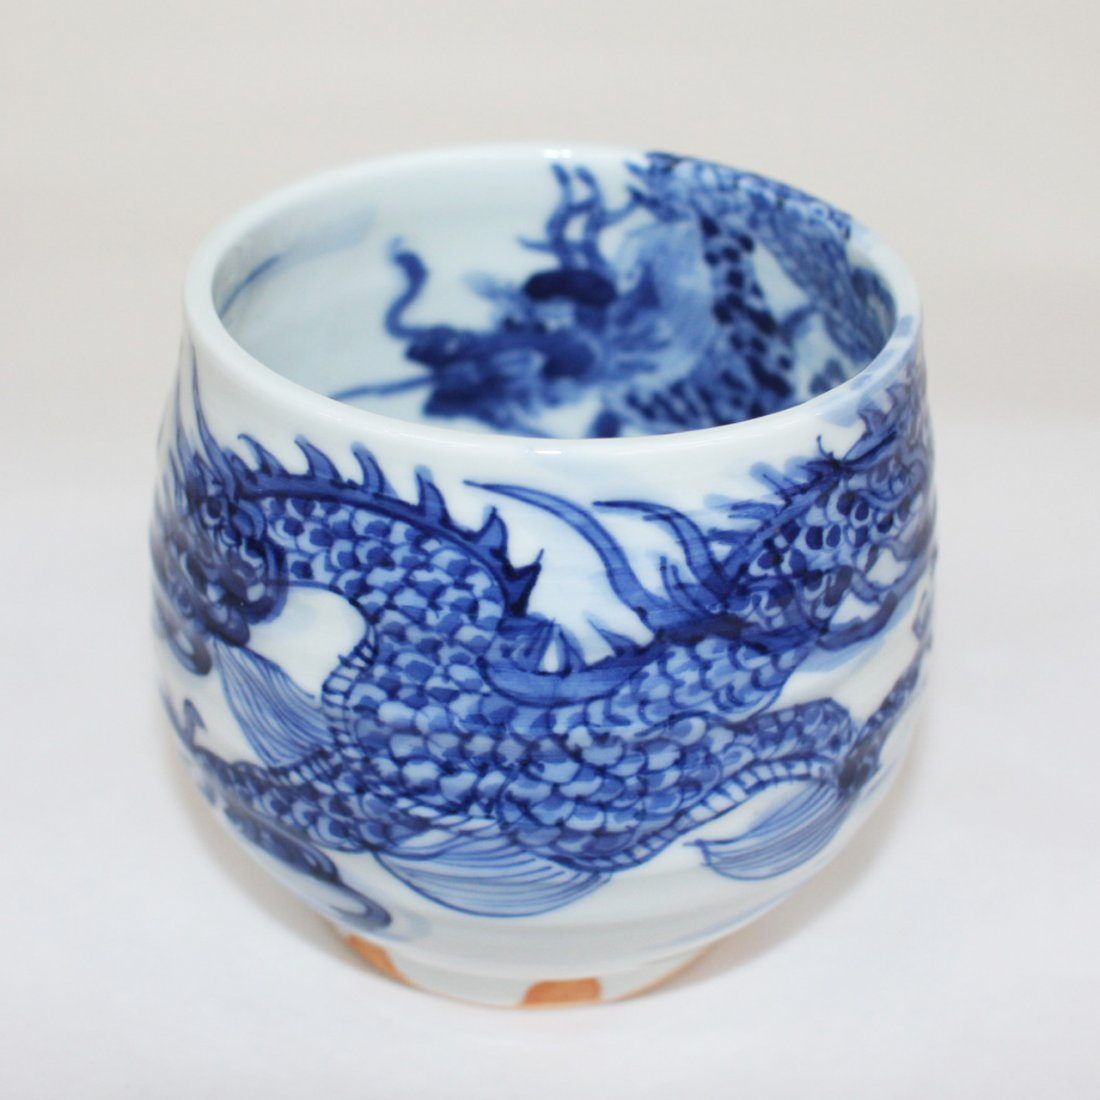 Japanese blue and white porcelain chawan [teabowl]